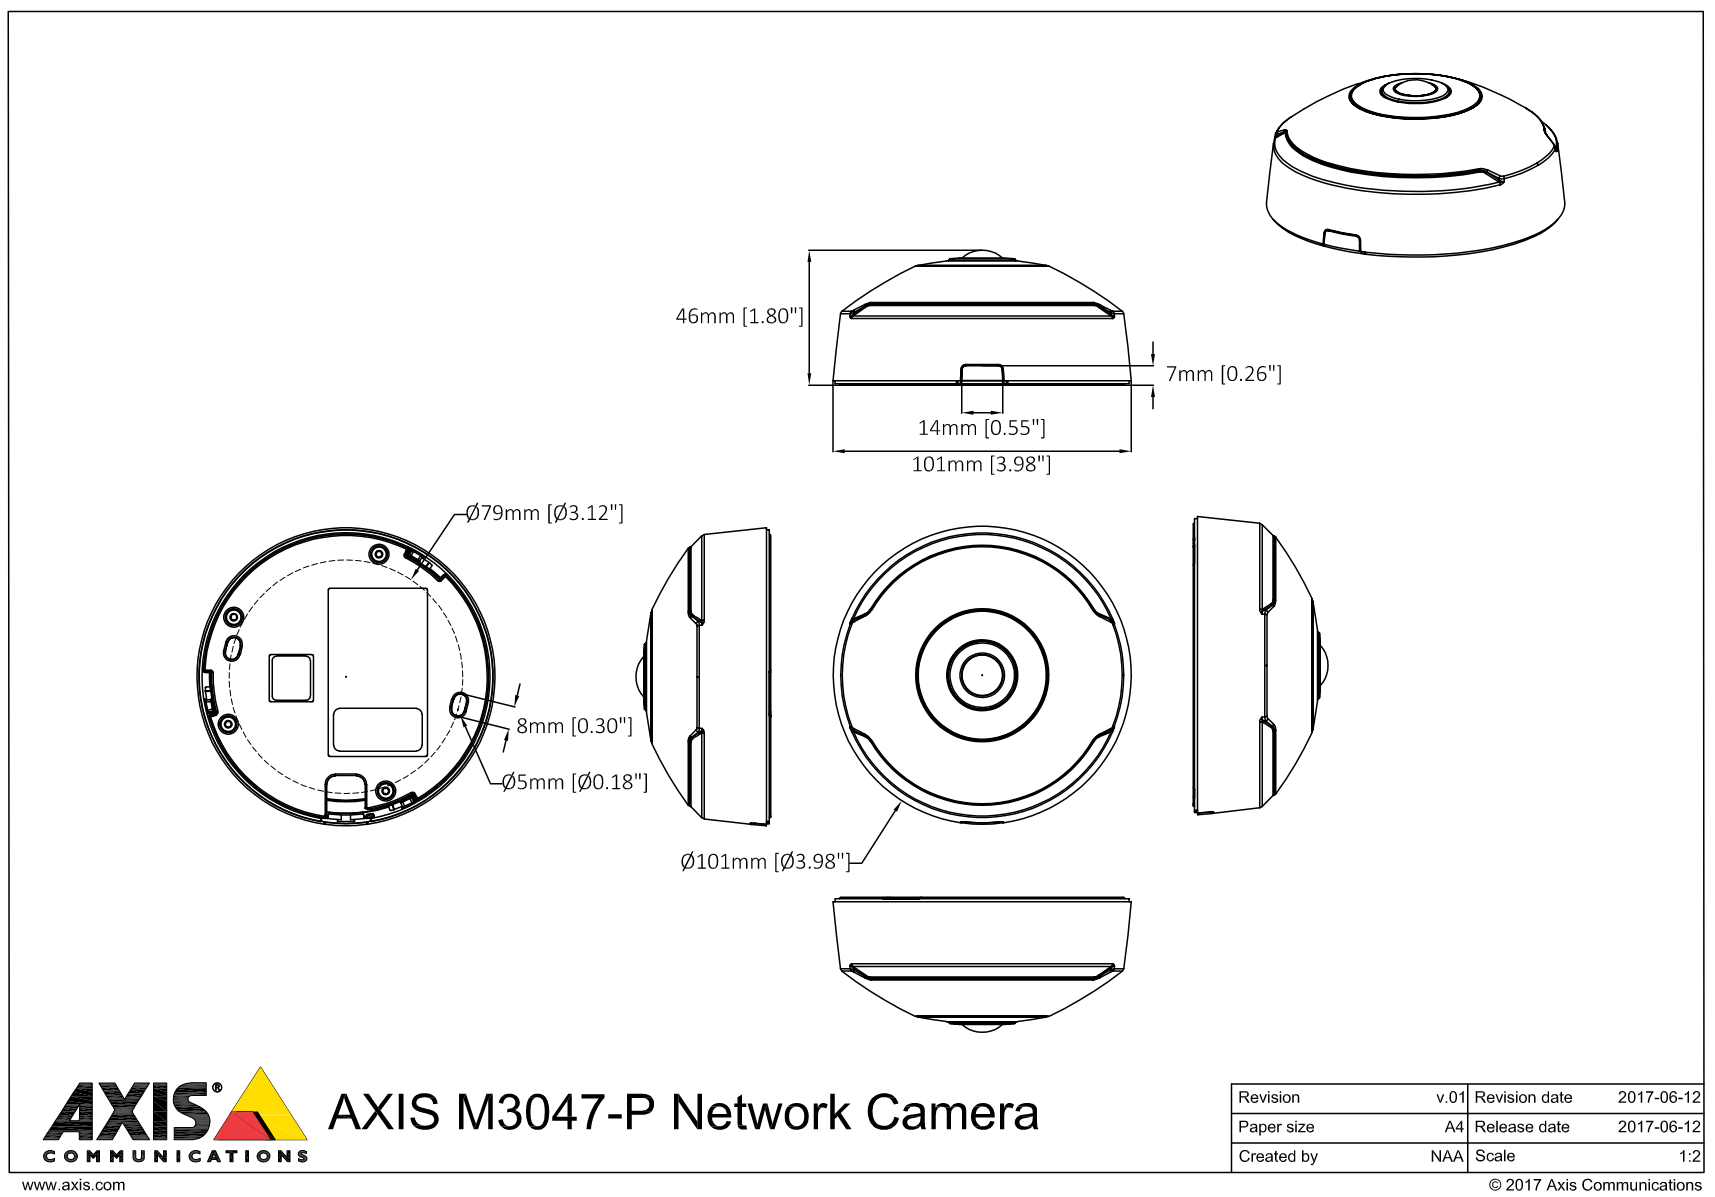 Axis M3047-P Dimensions